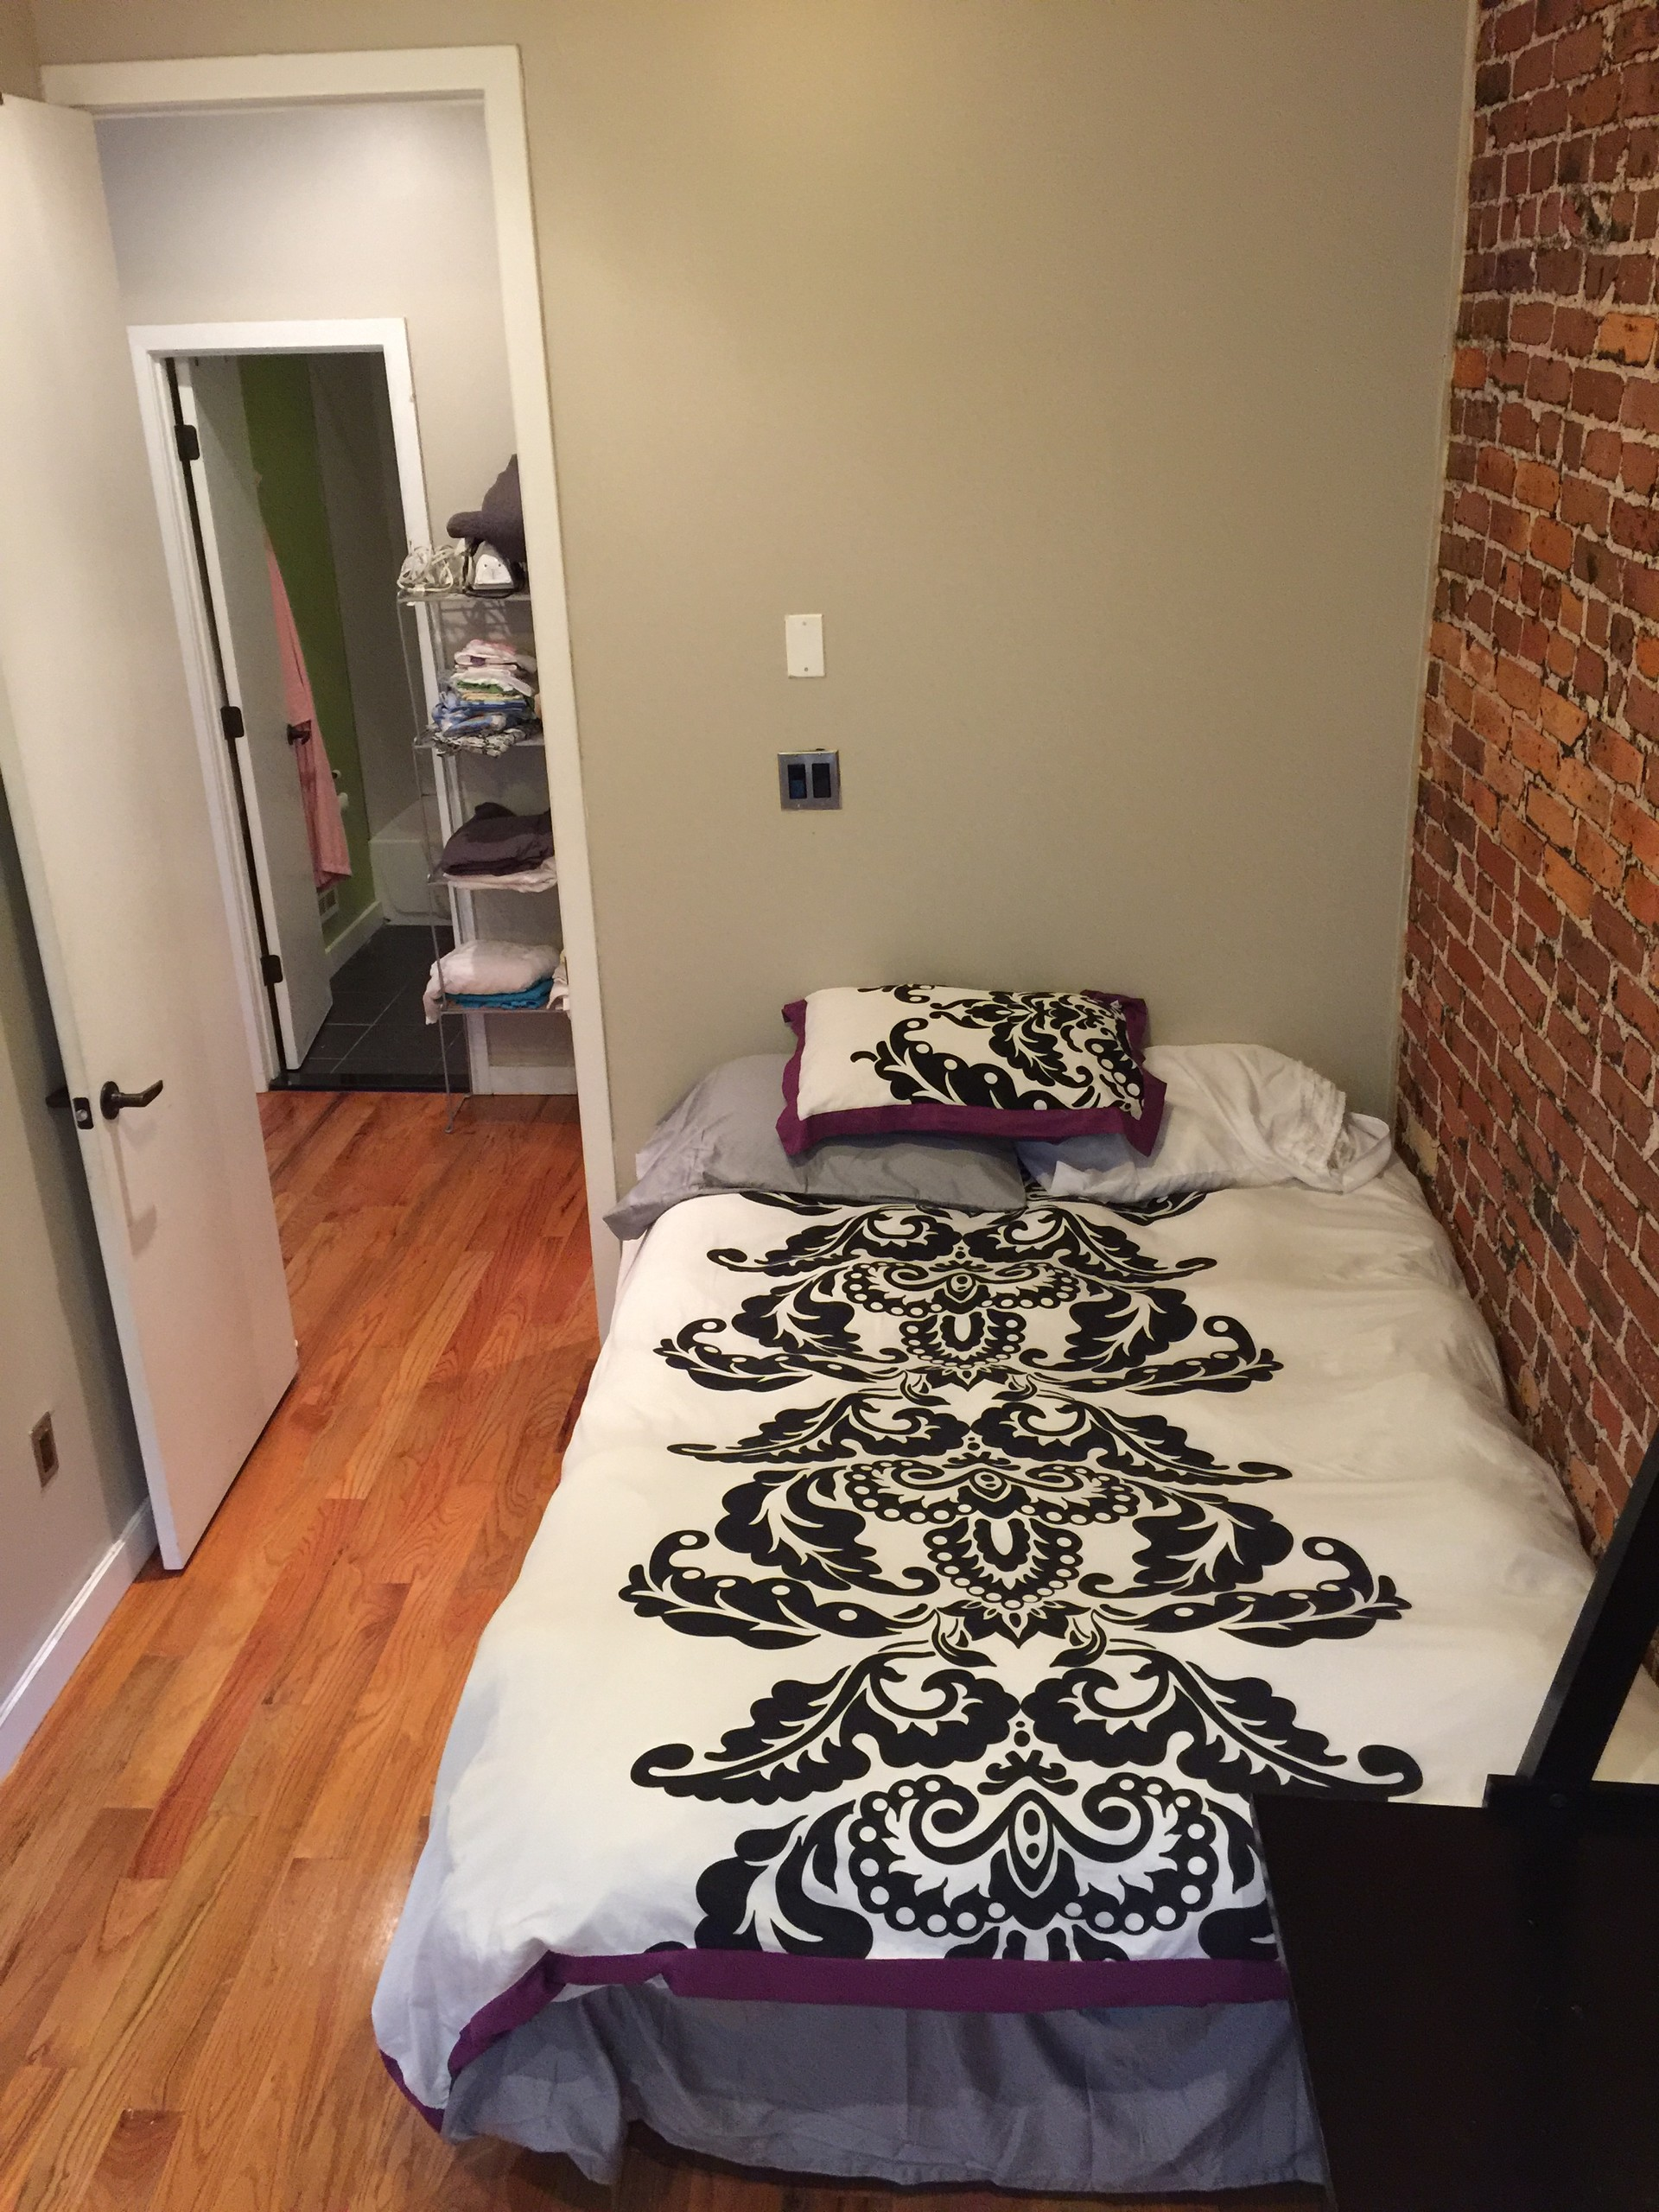 pin nyc rent craigslist apartment room check credit modern for images no apartments